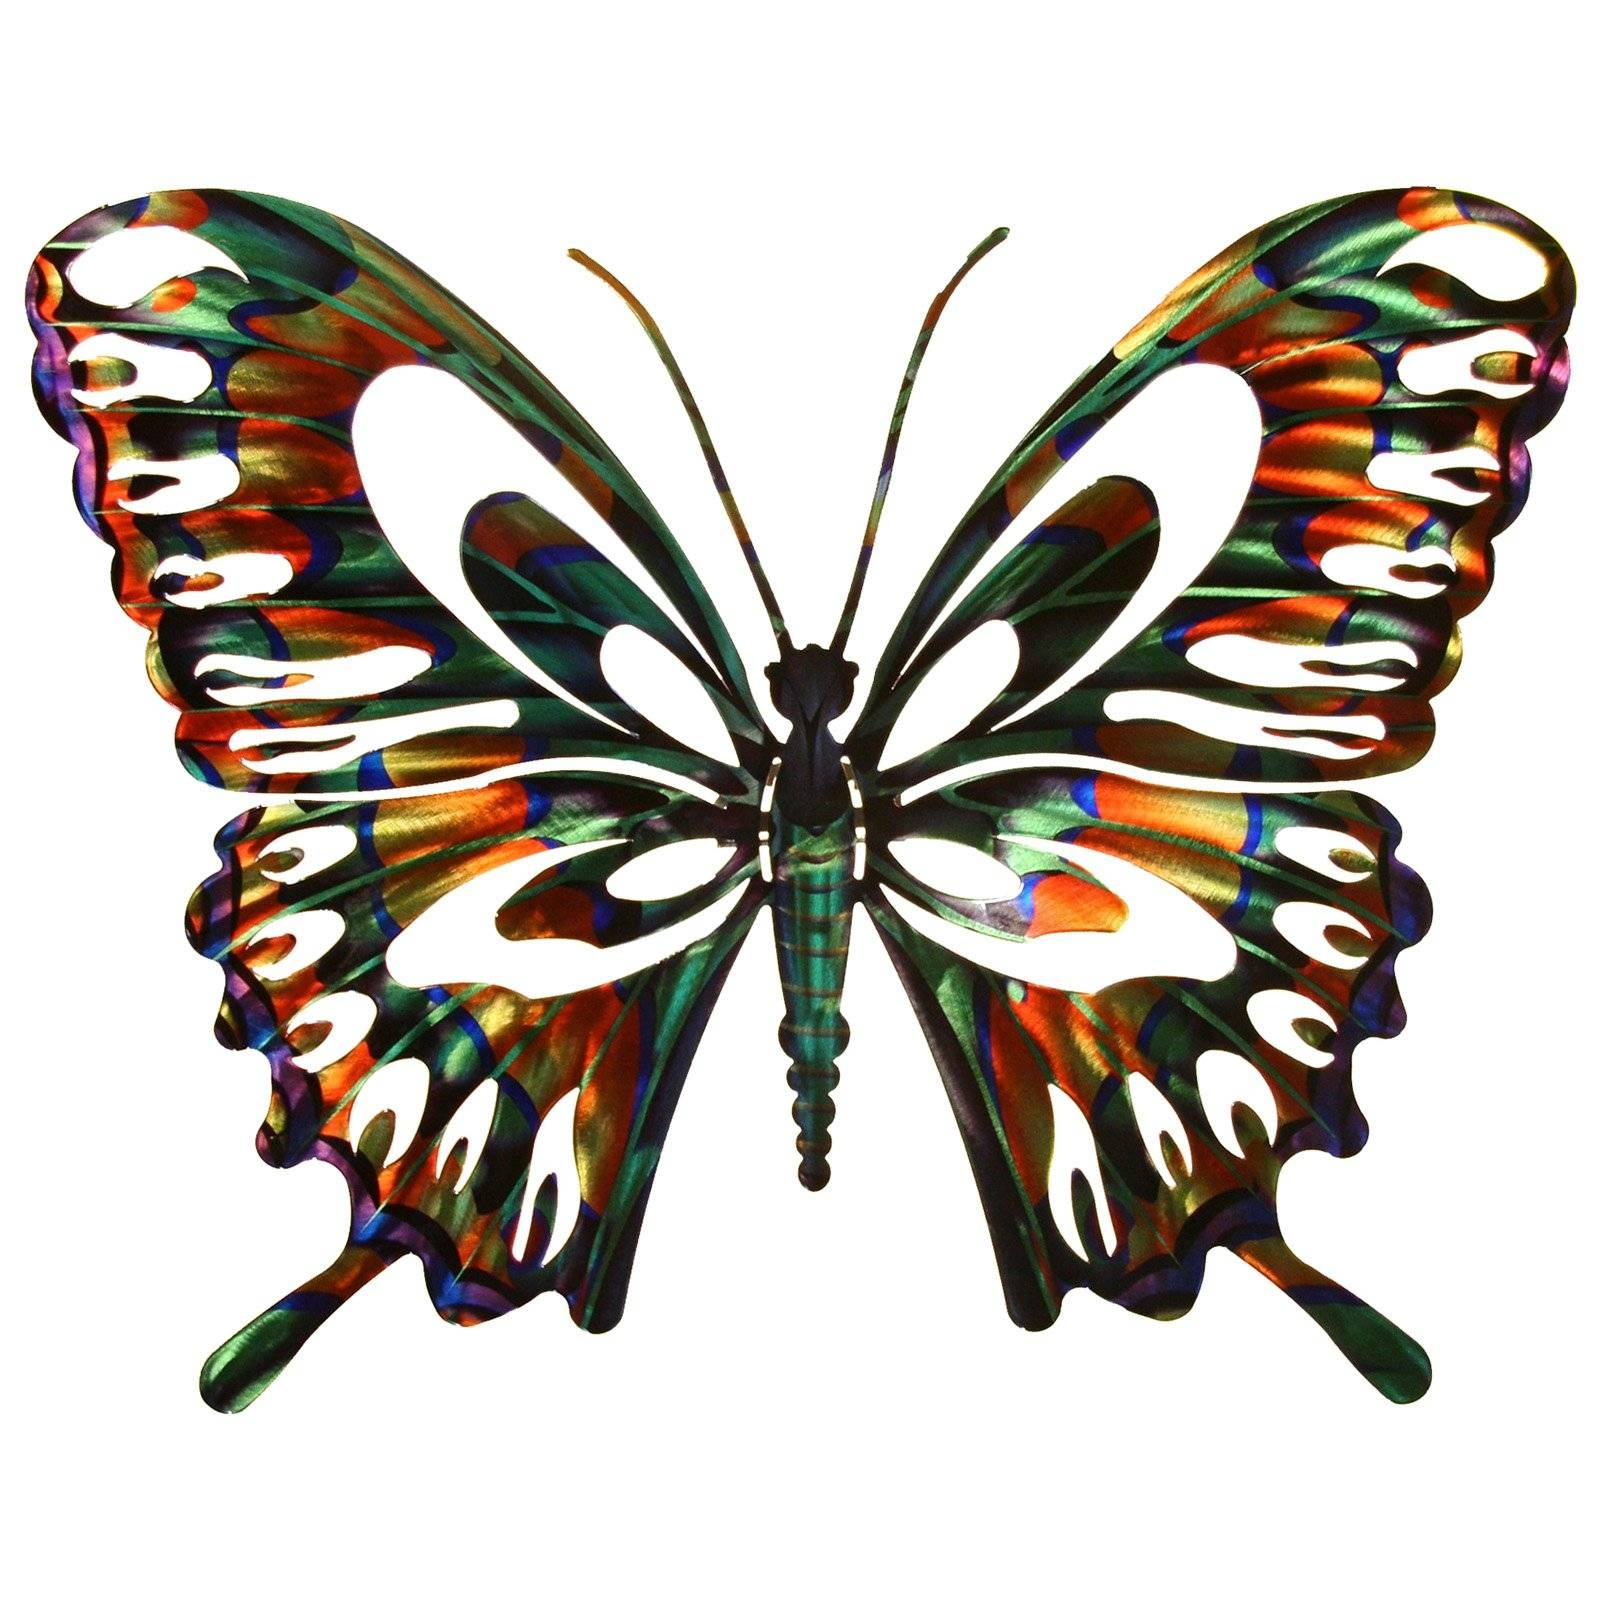 3D Butterfly Metal Outdoor Wall Art | Hayneedle In Current Outside Metal Wall Art (View 2 of 20)